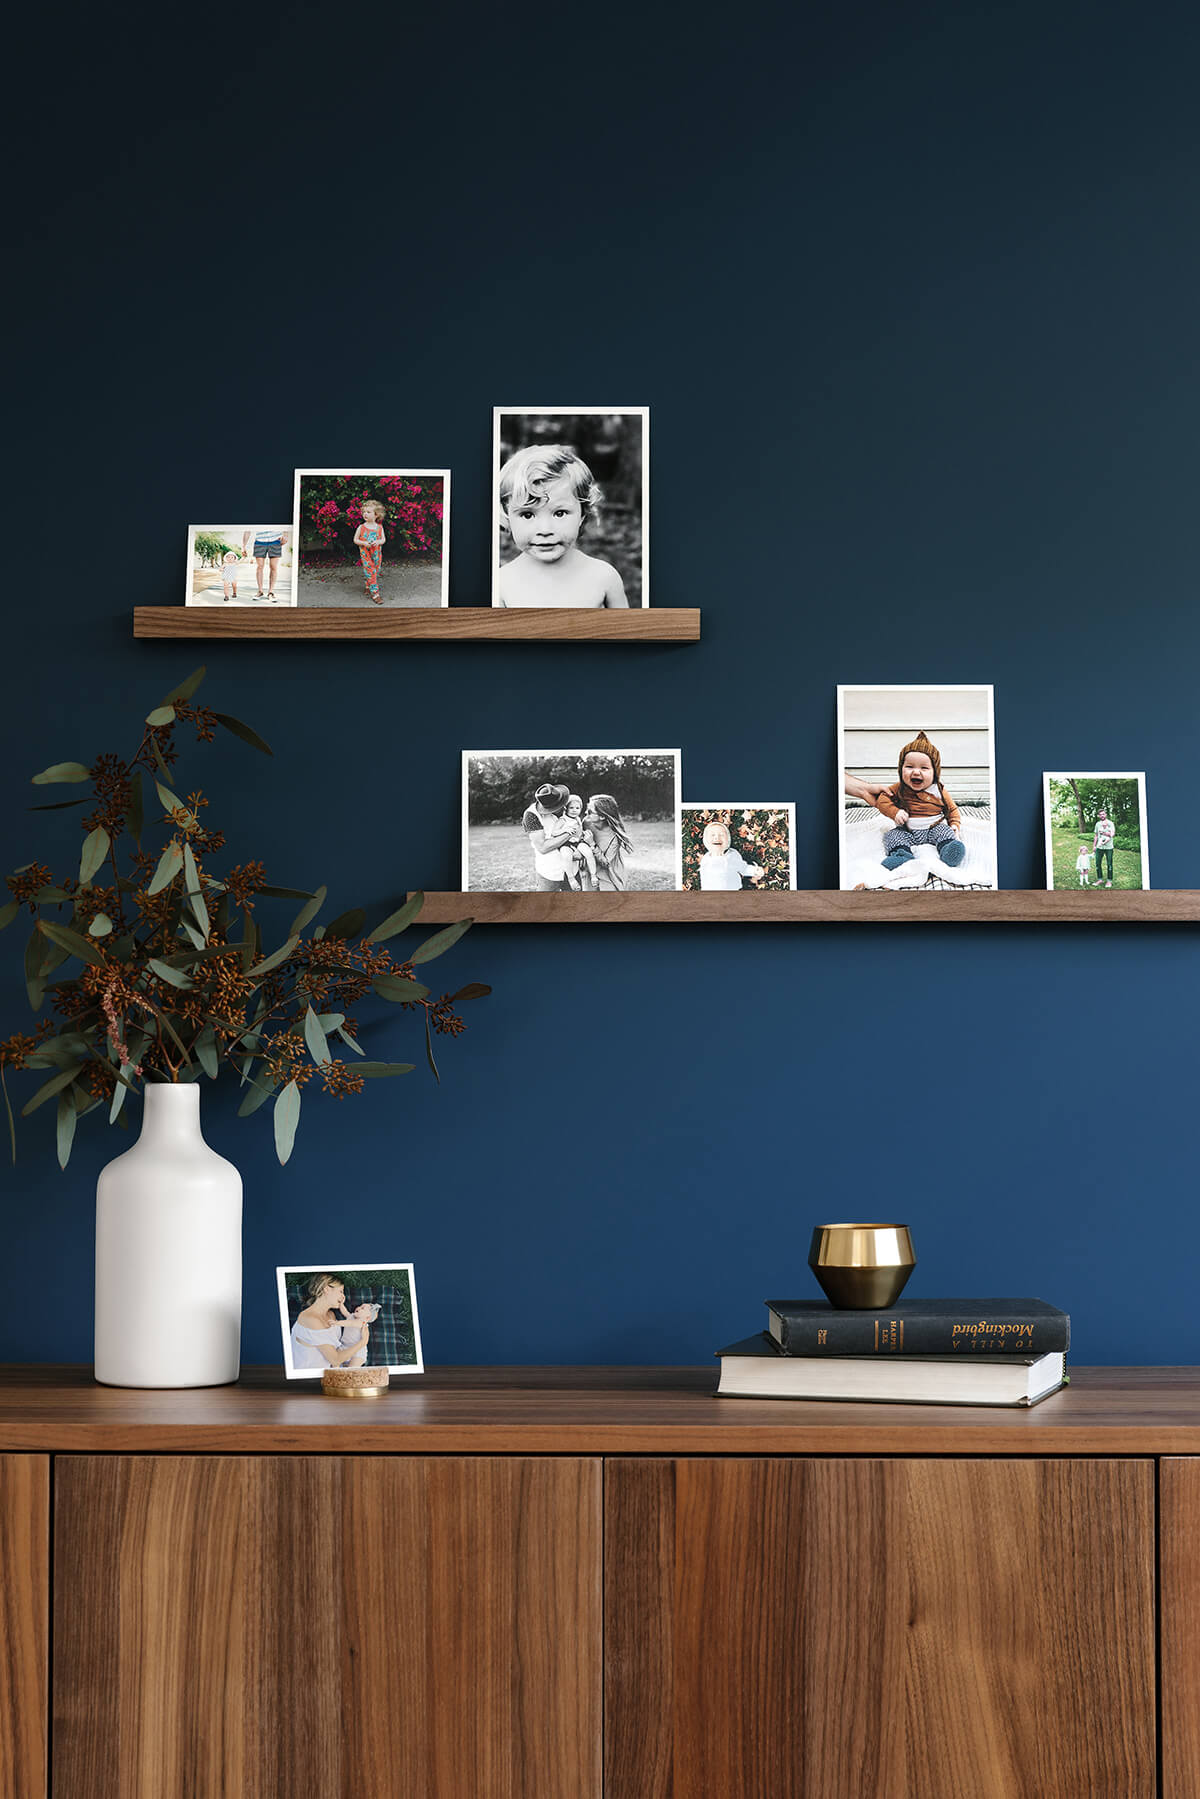 Prints arranged on a wooden photo ledge